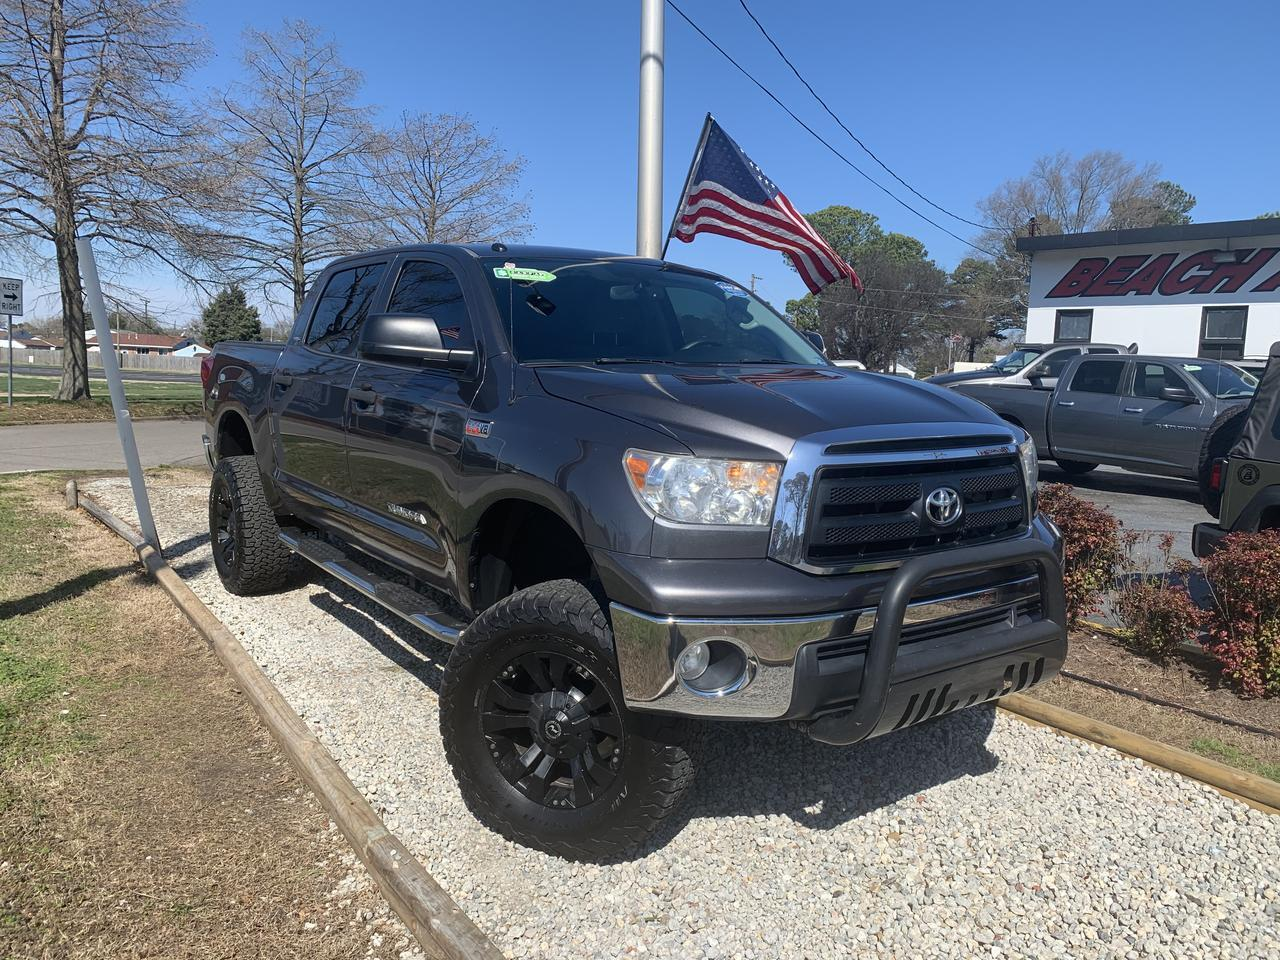 2012 TOYOTA TUNDRA SR5, WARRANTY,LIFTED, RUNNING BOARDS, TOW PKG, AUX PORT, USB PORT, BLUETOOTH,  TOW PKG! Norfolk VA